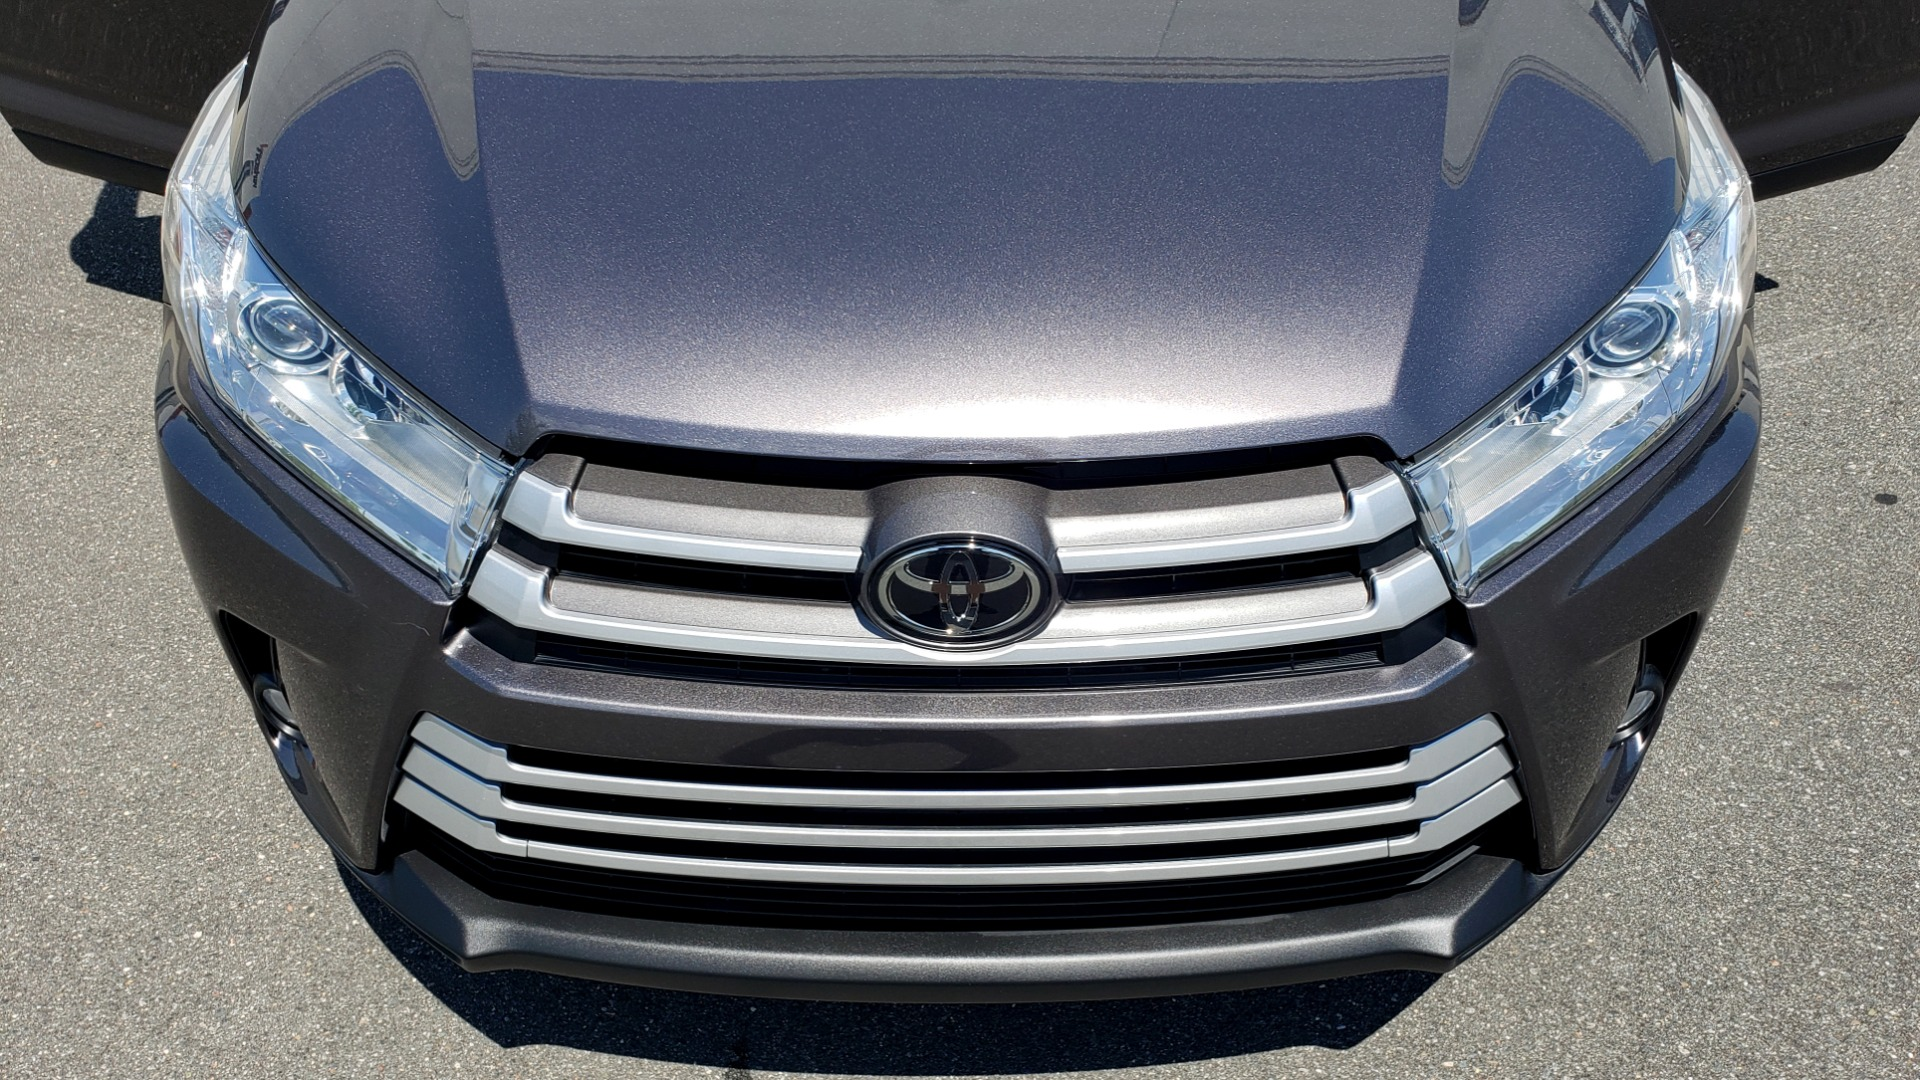 Used 2019 Toyota HIGHLANDER XLE / 3.5L V6 / AWD / LEATHER / 8-SPD AUTO / 1-OWNER for sale $37,500 at Formula Imports in Charlotte NC 28227 23